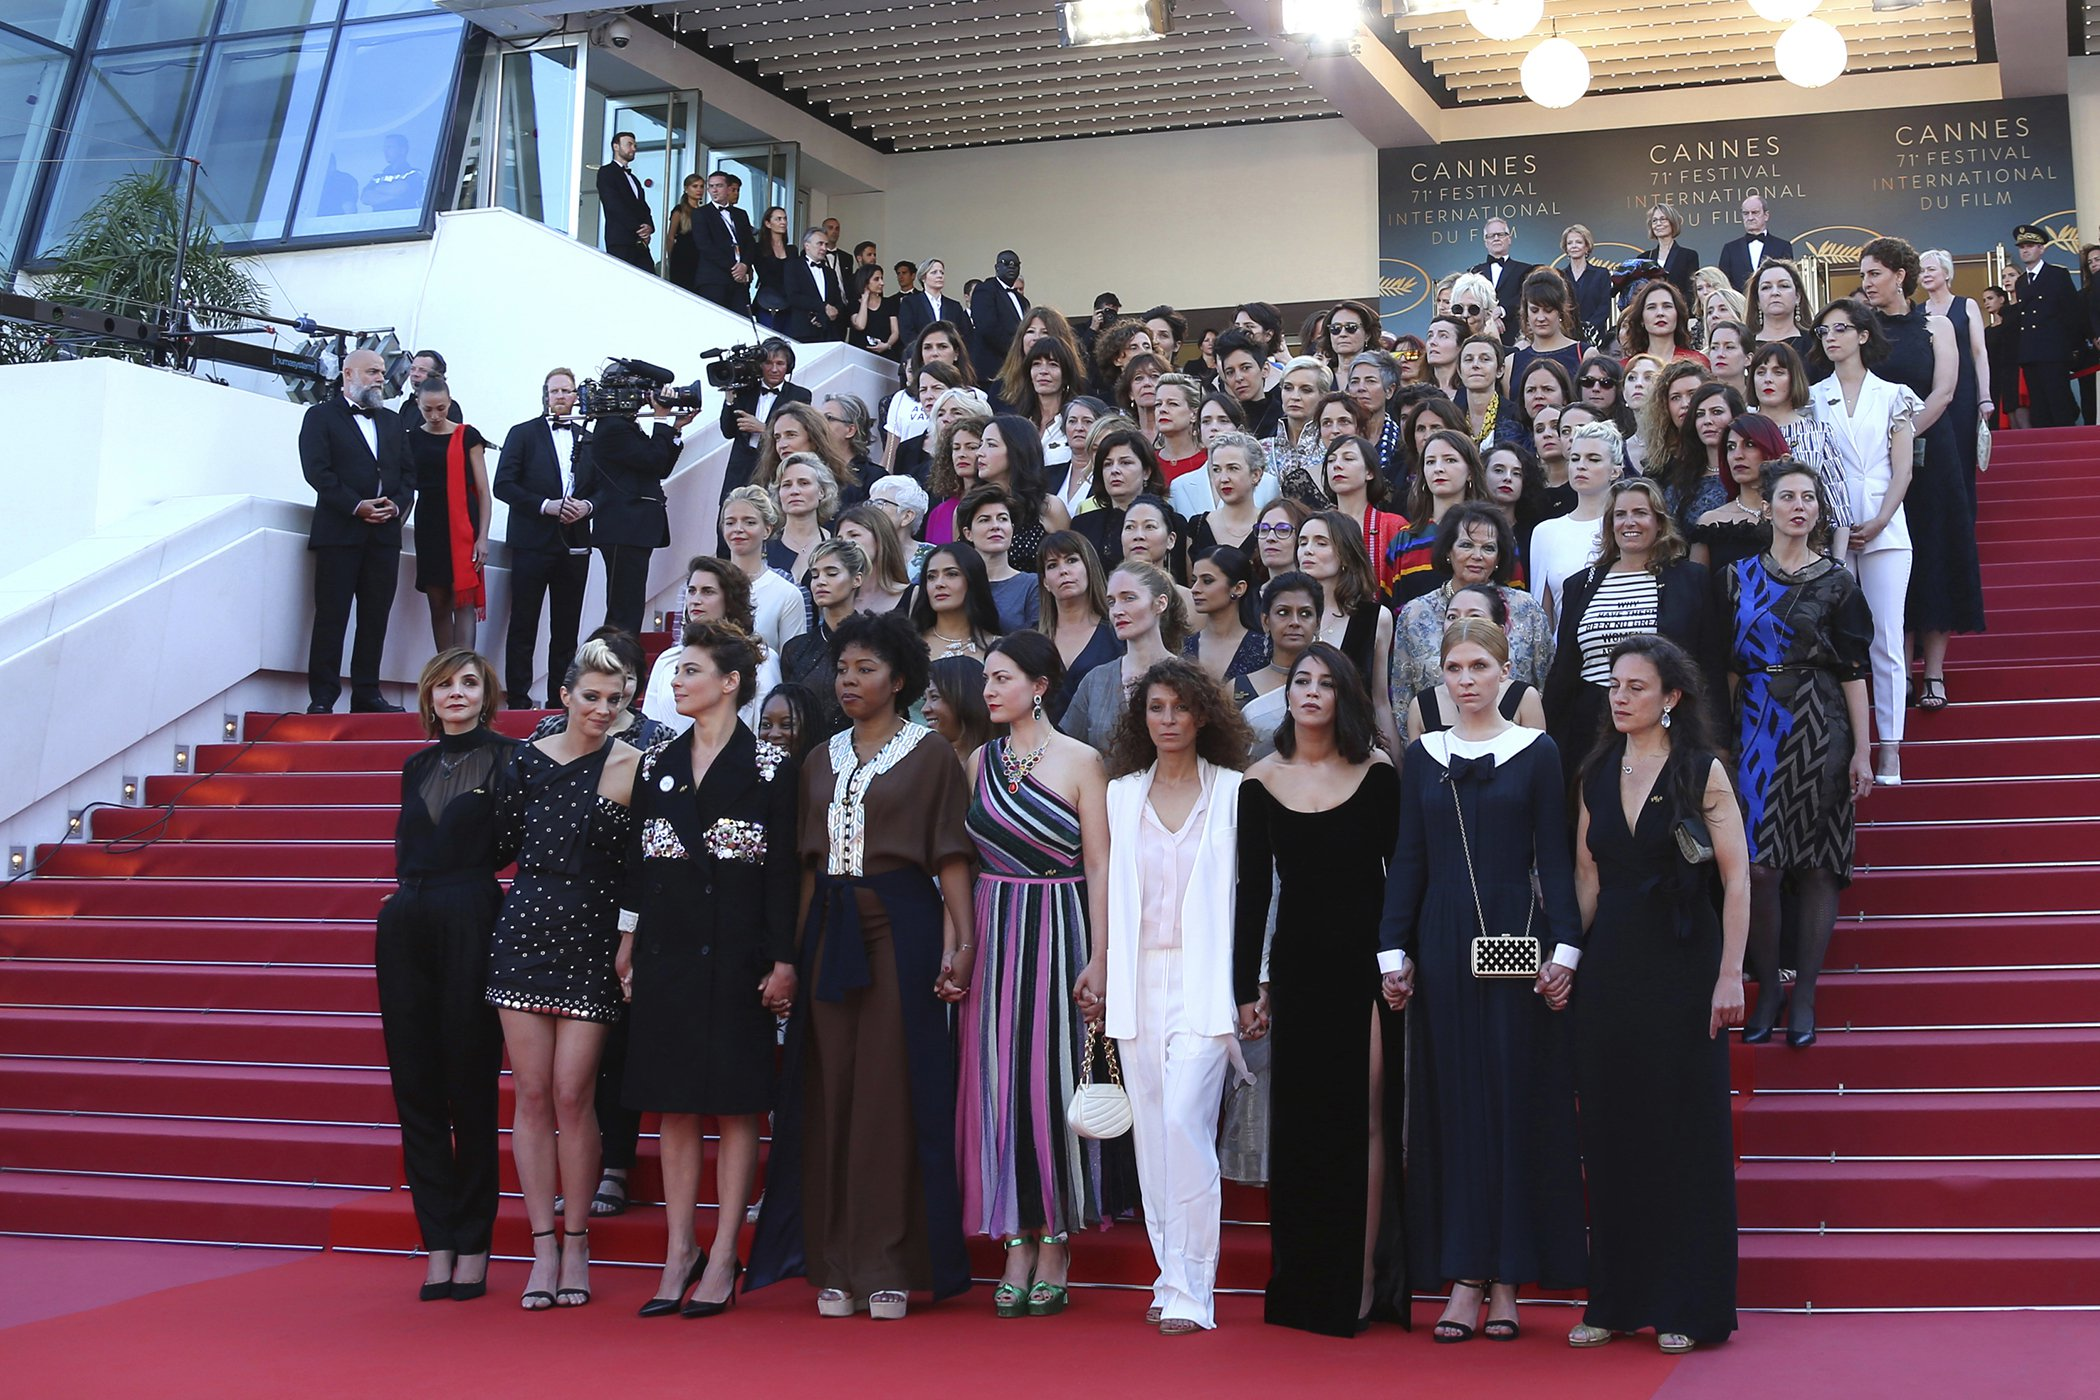 Cannes-Protest-Women.jpg